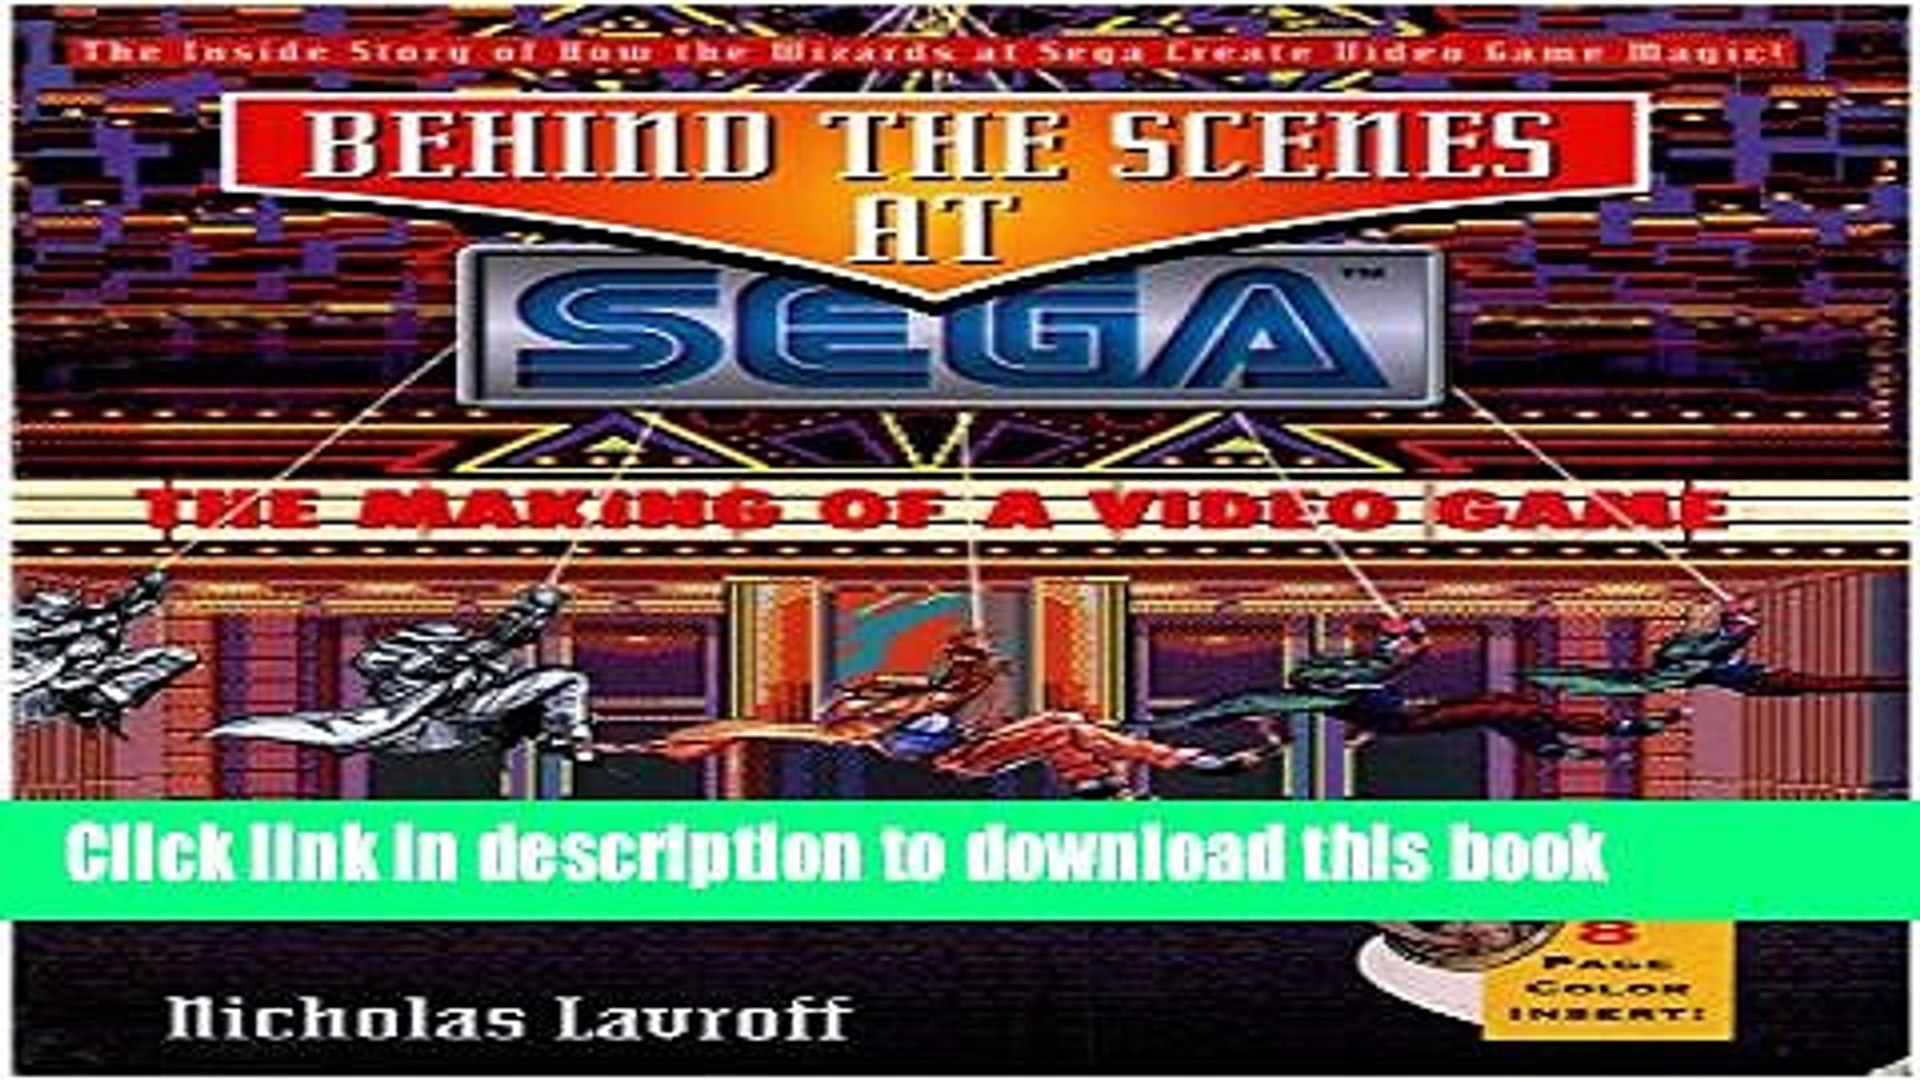 Download Behind the Scenes at Sega: The Making of a Video Game PDF Free